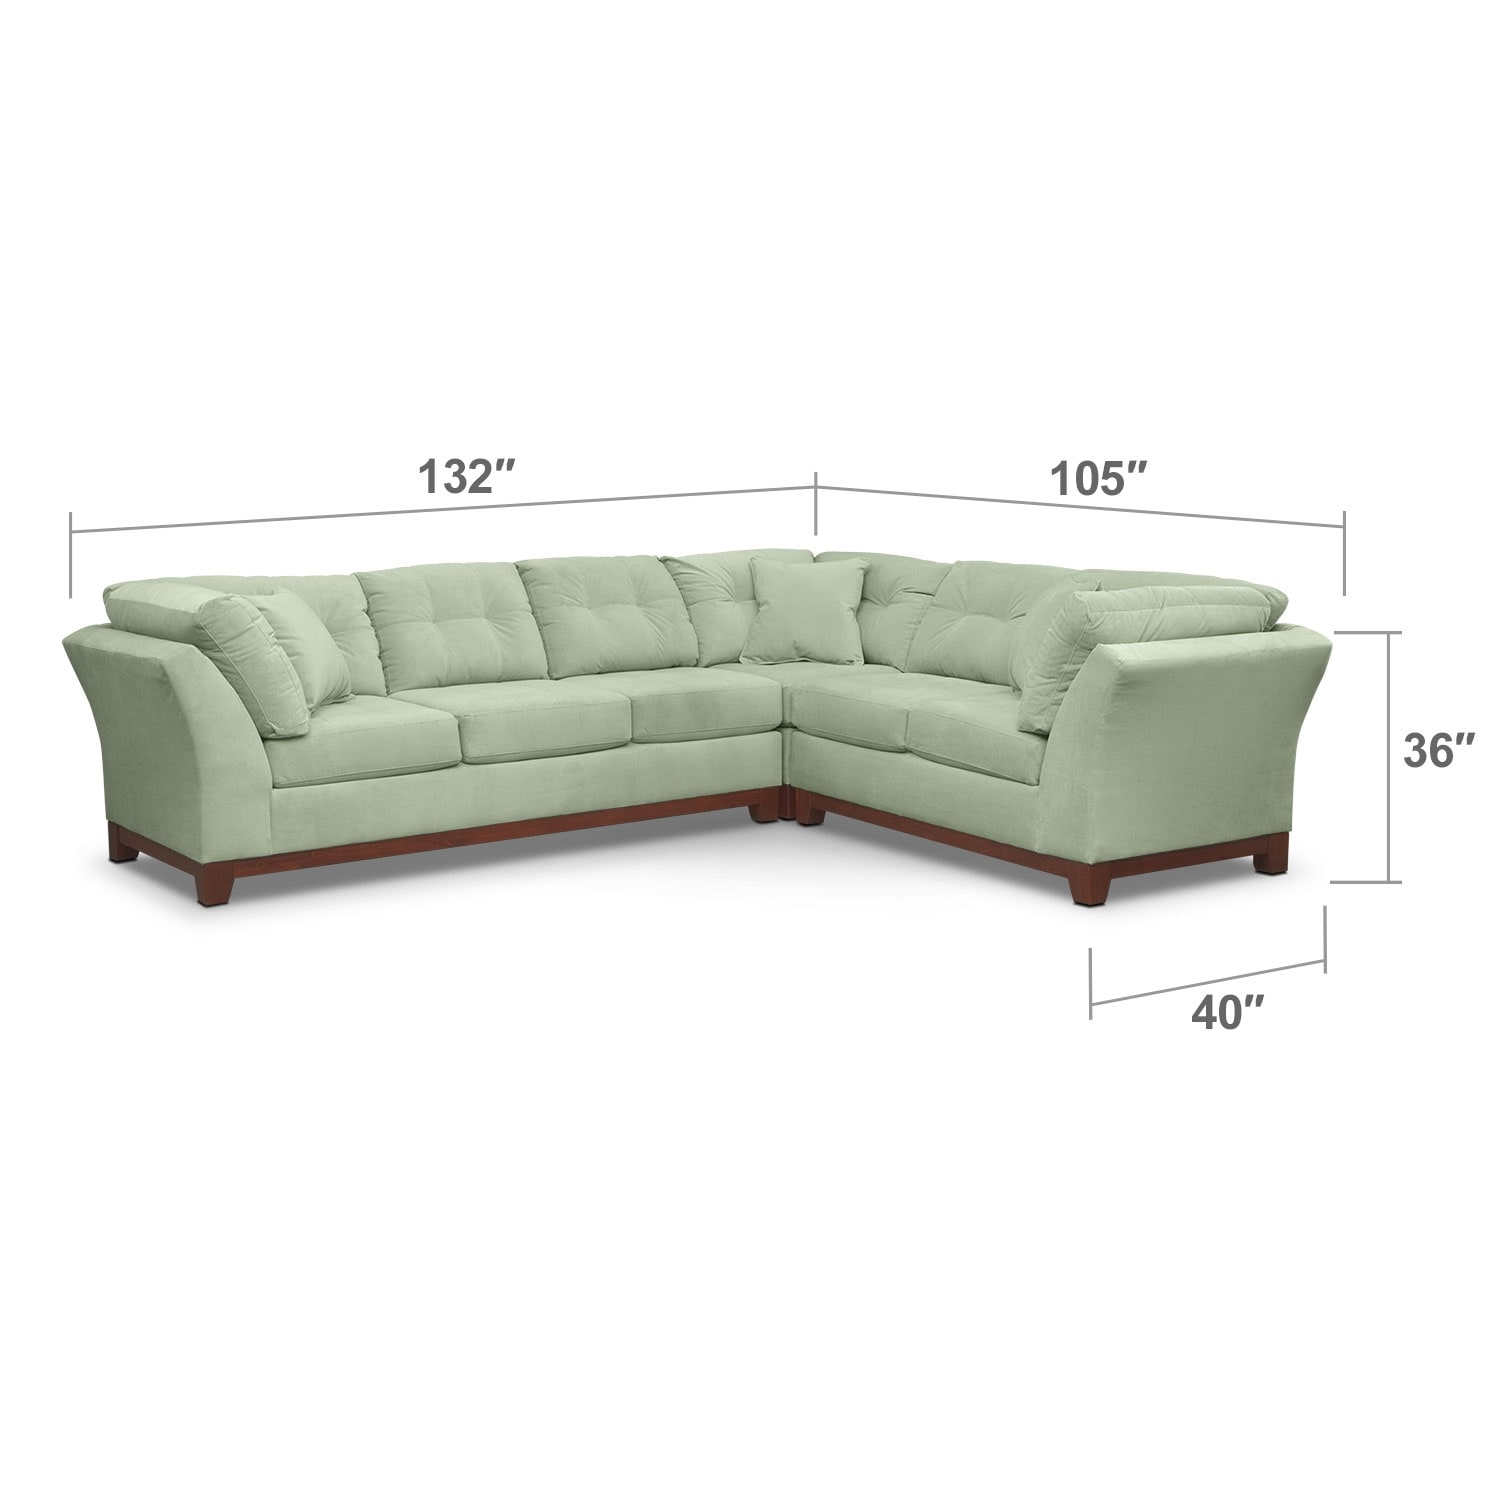 Living Room Furniture - Solace 3-Piece Left-Facing Sofa Sectional - Spa